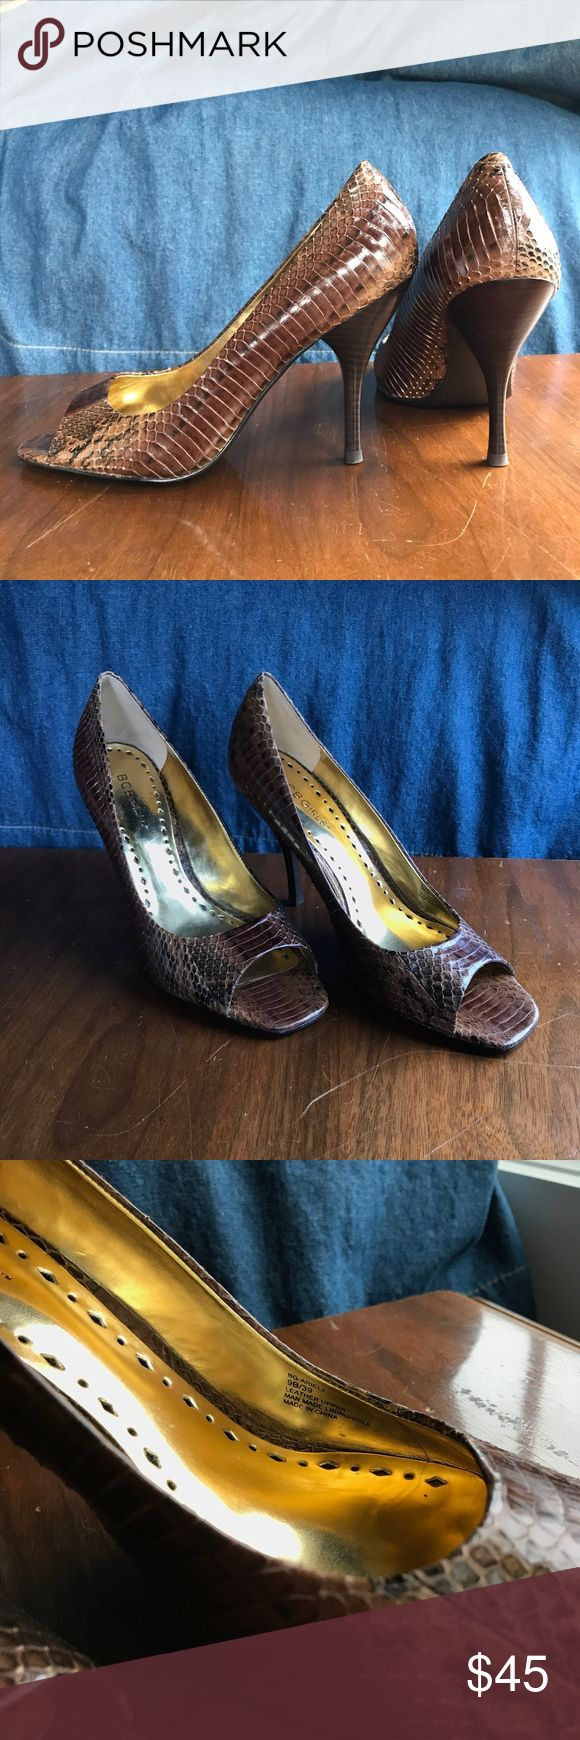 BCBBG Heels BCBG Girls beautiful brown leather python peep toe heels. Worn only once, like new! Beautiful style heel, great for any season with a cocktail dress or with your favorite denim! Please comment below for any questions! BCBG Shoes Heels